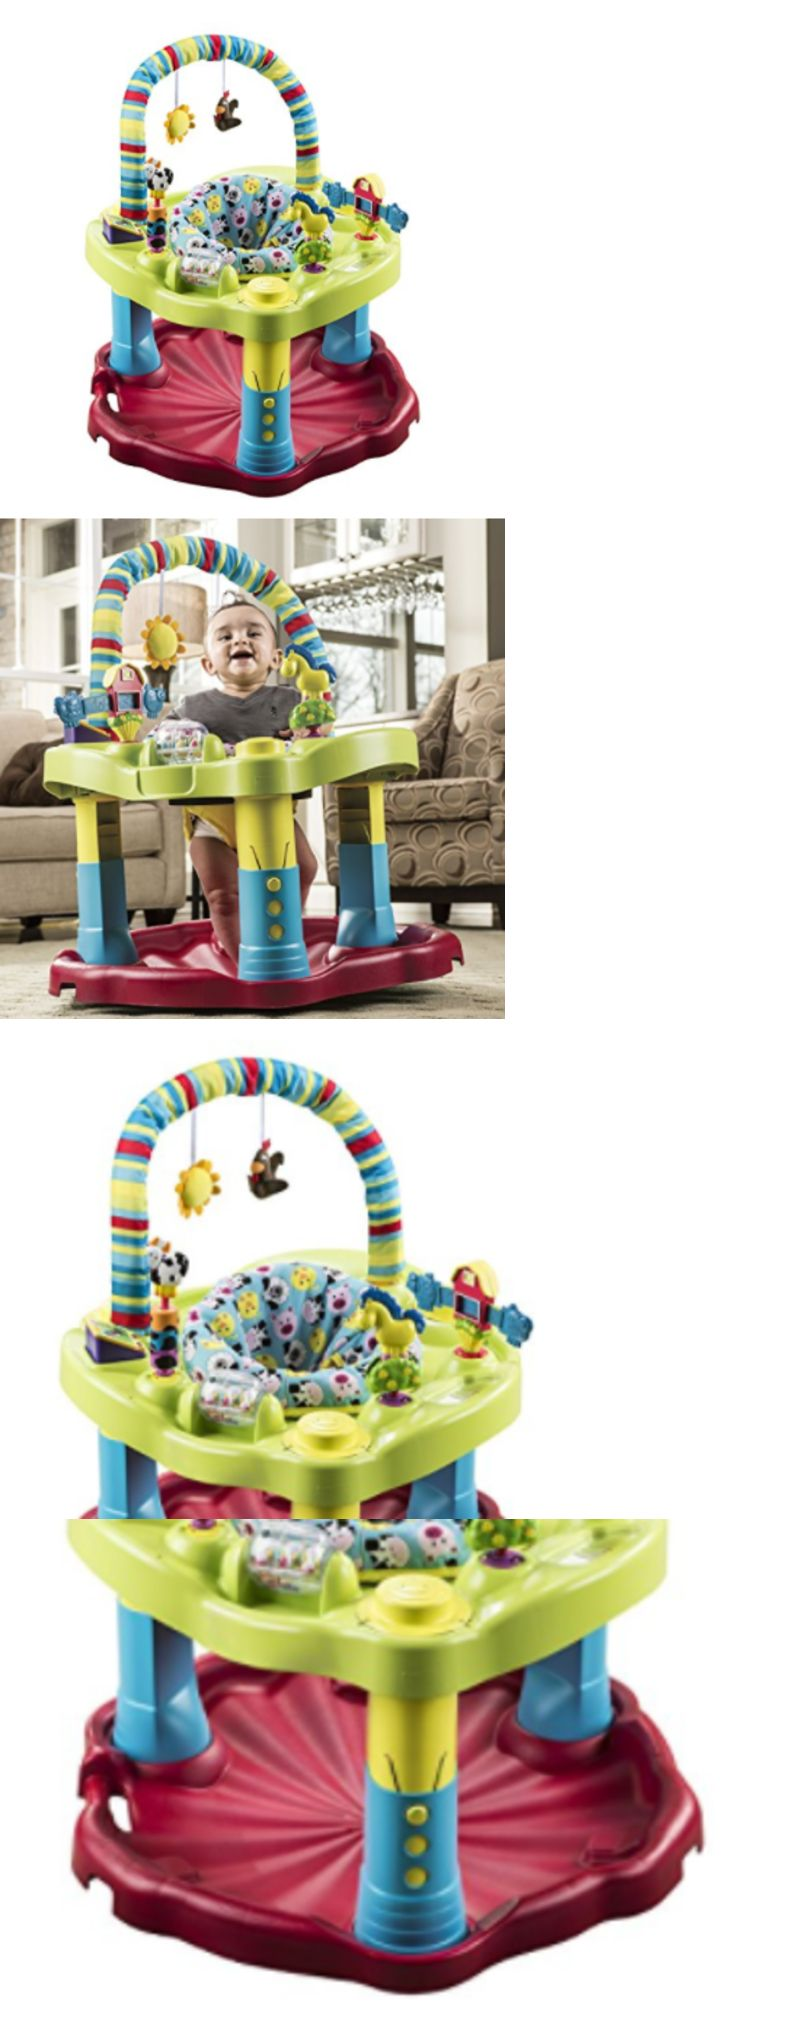 dc7c0b13f Evenflo Baby Excer Saucer Bouncing Barnyard Saucer w Fun Learning ...